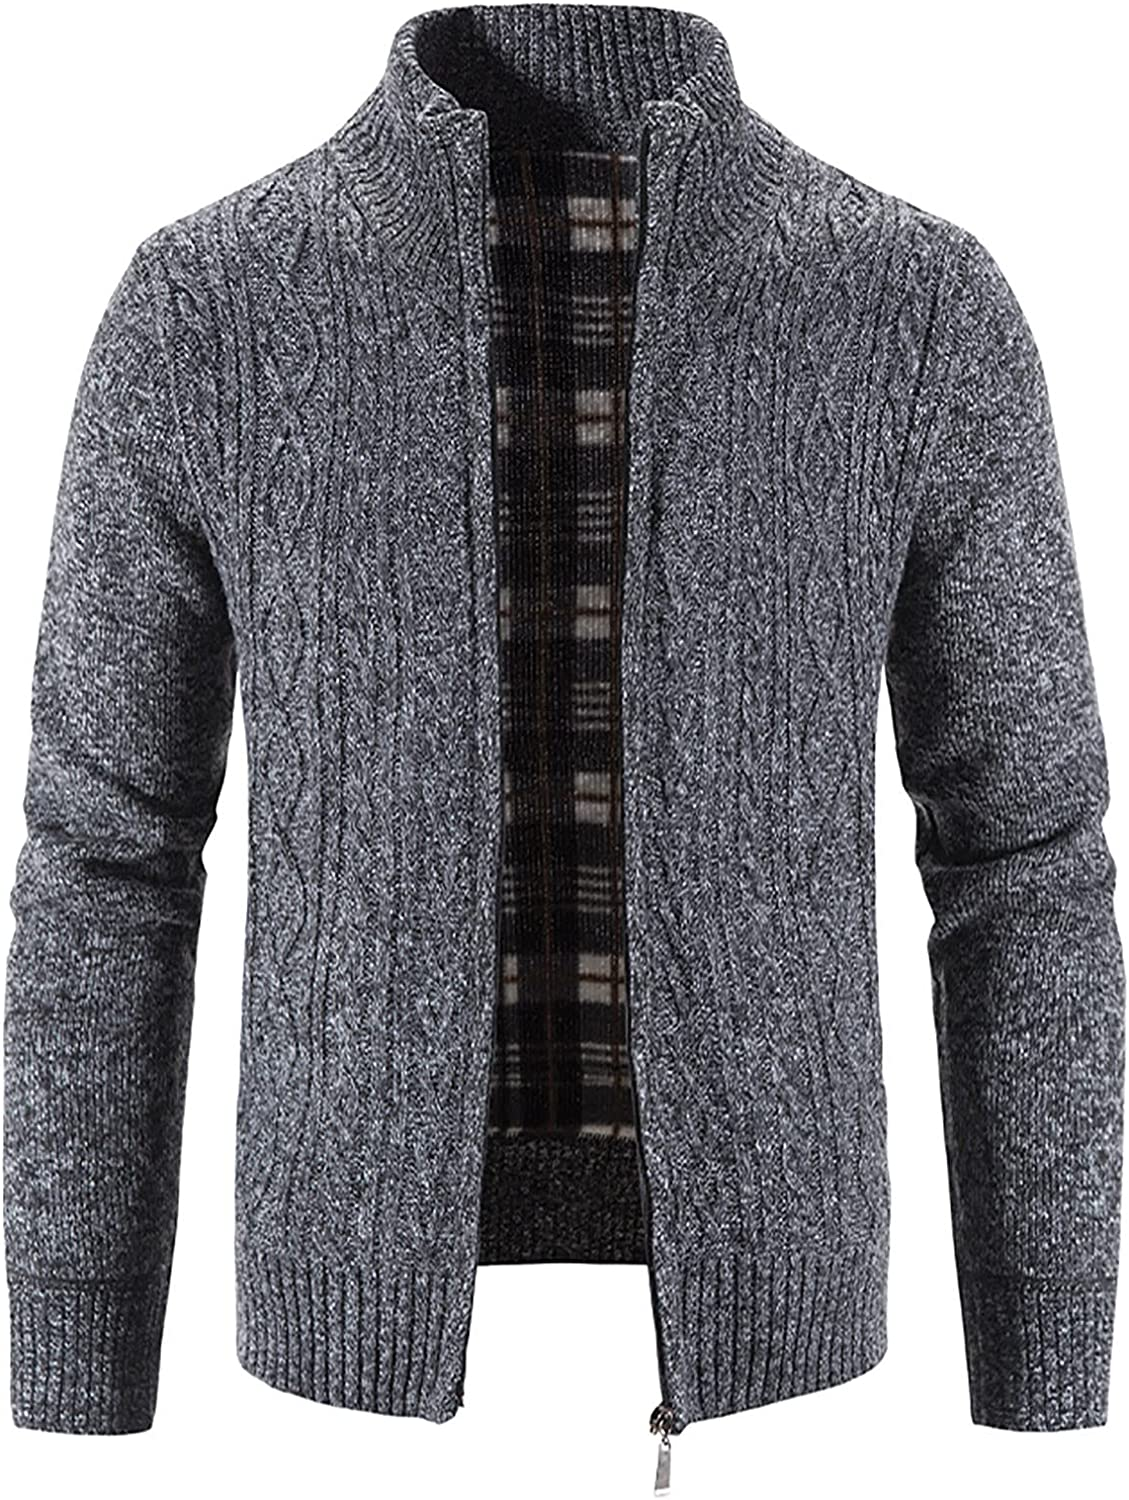 Bravetoshop Men's Cardigan Sweaters Casual Slim Fit Full Zip Thick Knitted Sweater with Pockets